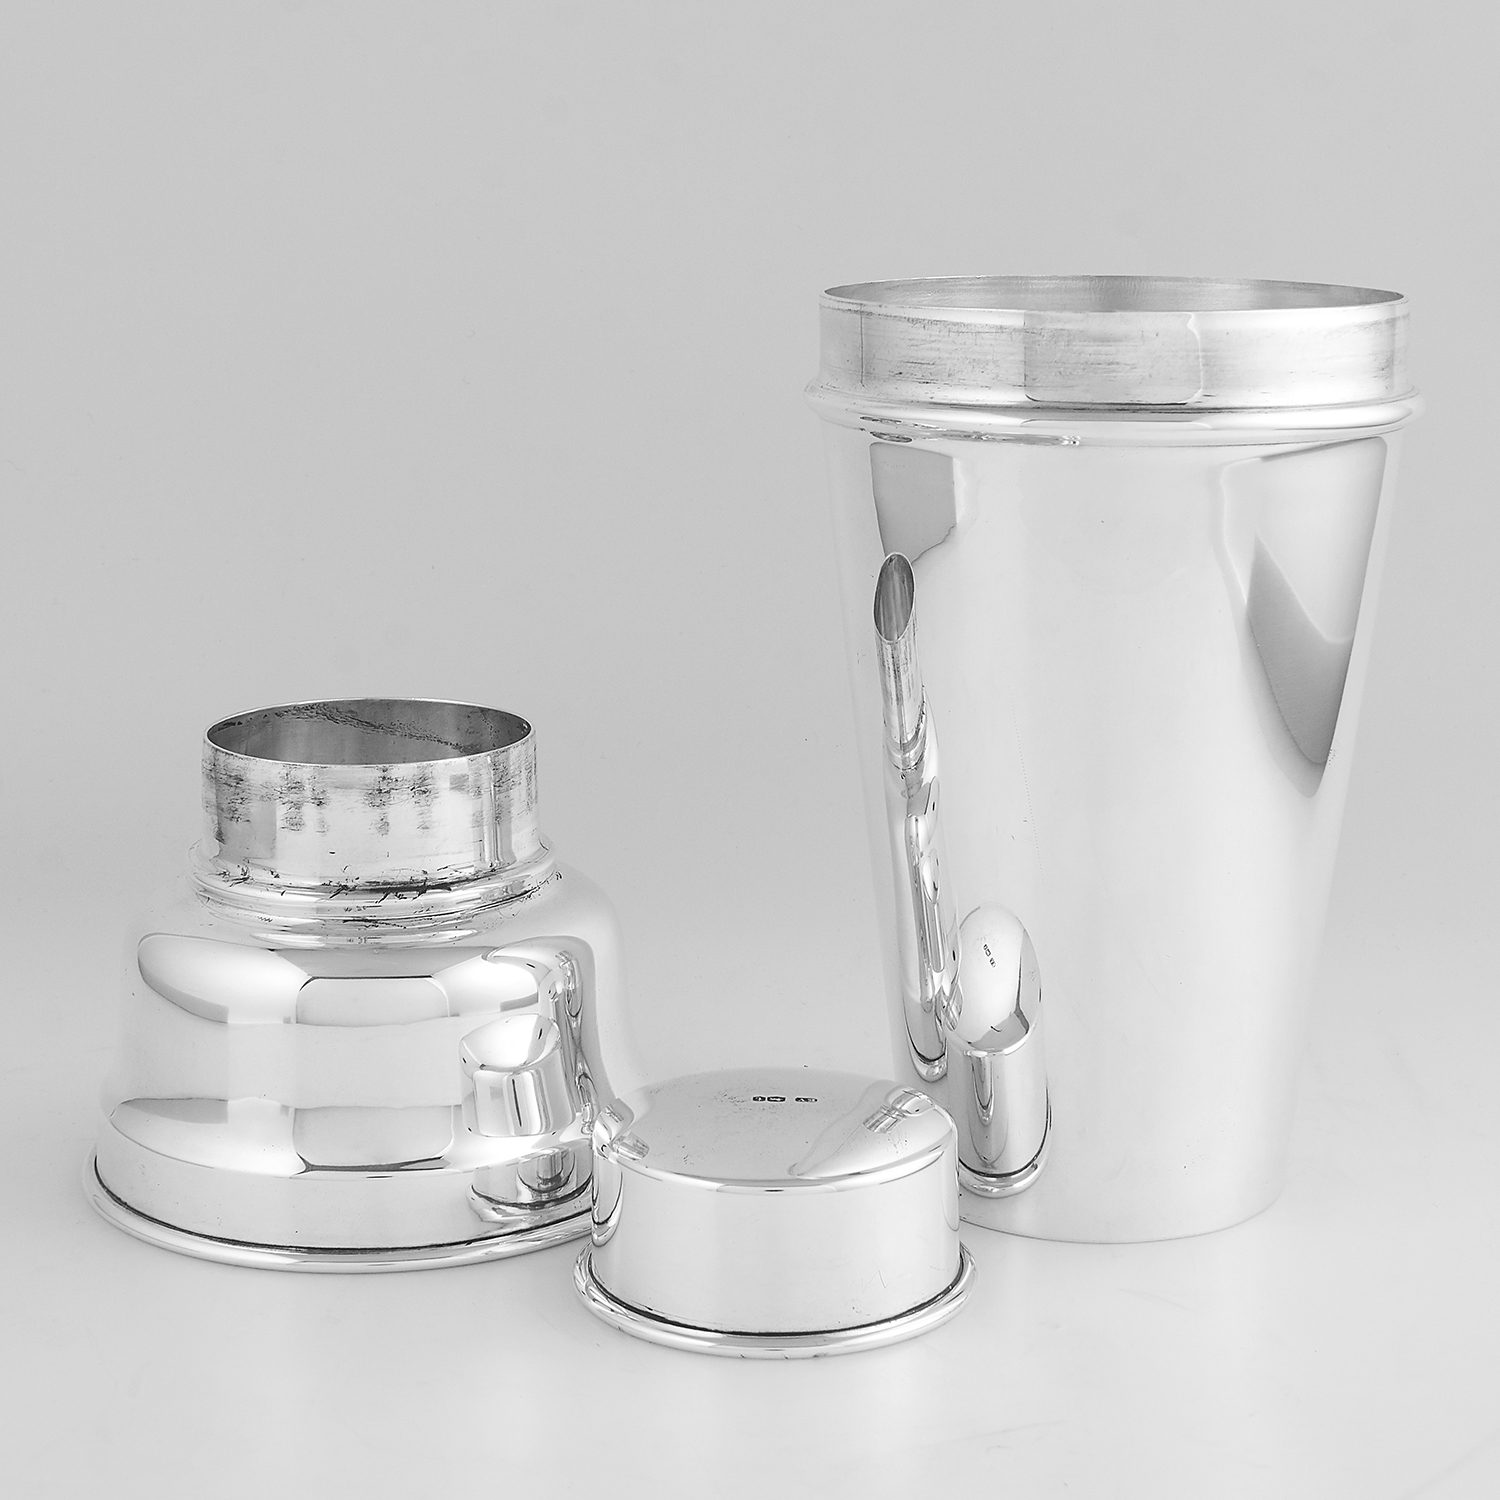 ANTIQUE GEORGE V STERLING SILVER COCKTAIL SHAKER, VINERS LTD LONDON 1934 the tapering body plain - Image 2 of 2